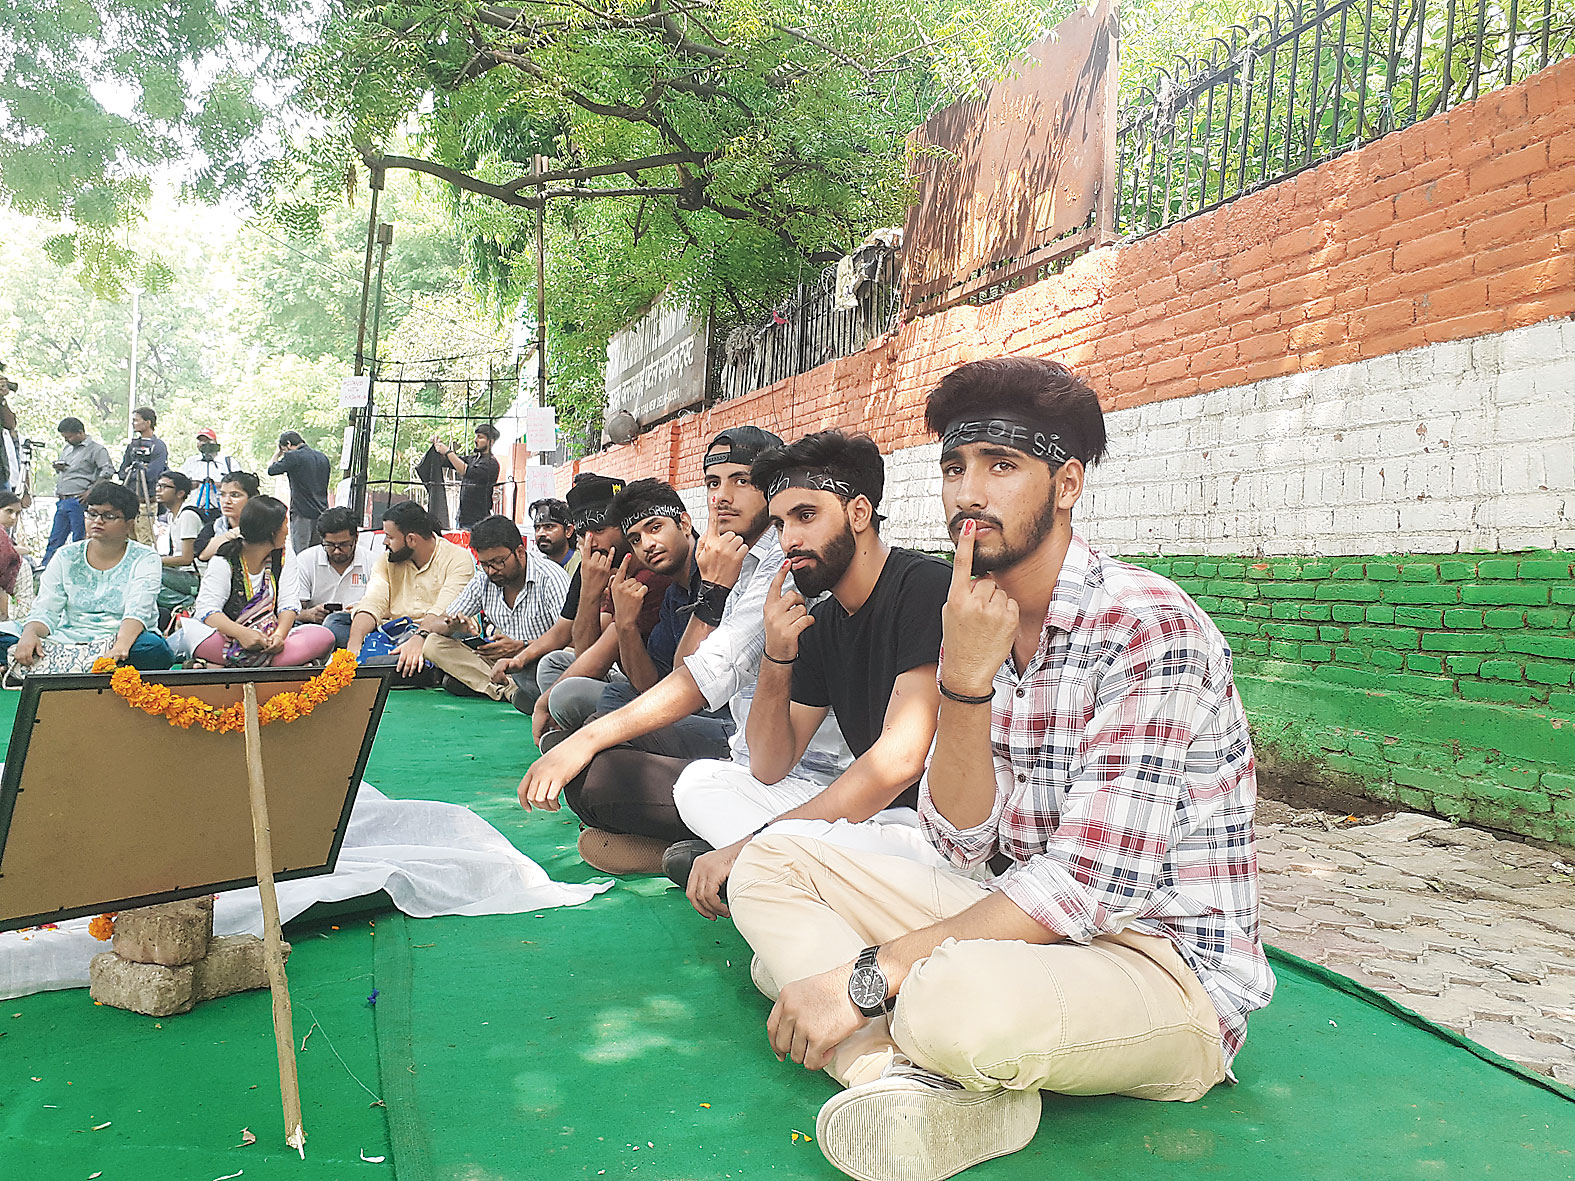 Several Kashmiri students in New Delhi observed Muharram by marking their fingers with red ink and wearing black bandanas on Jantar Mantar Road.